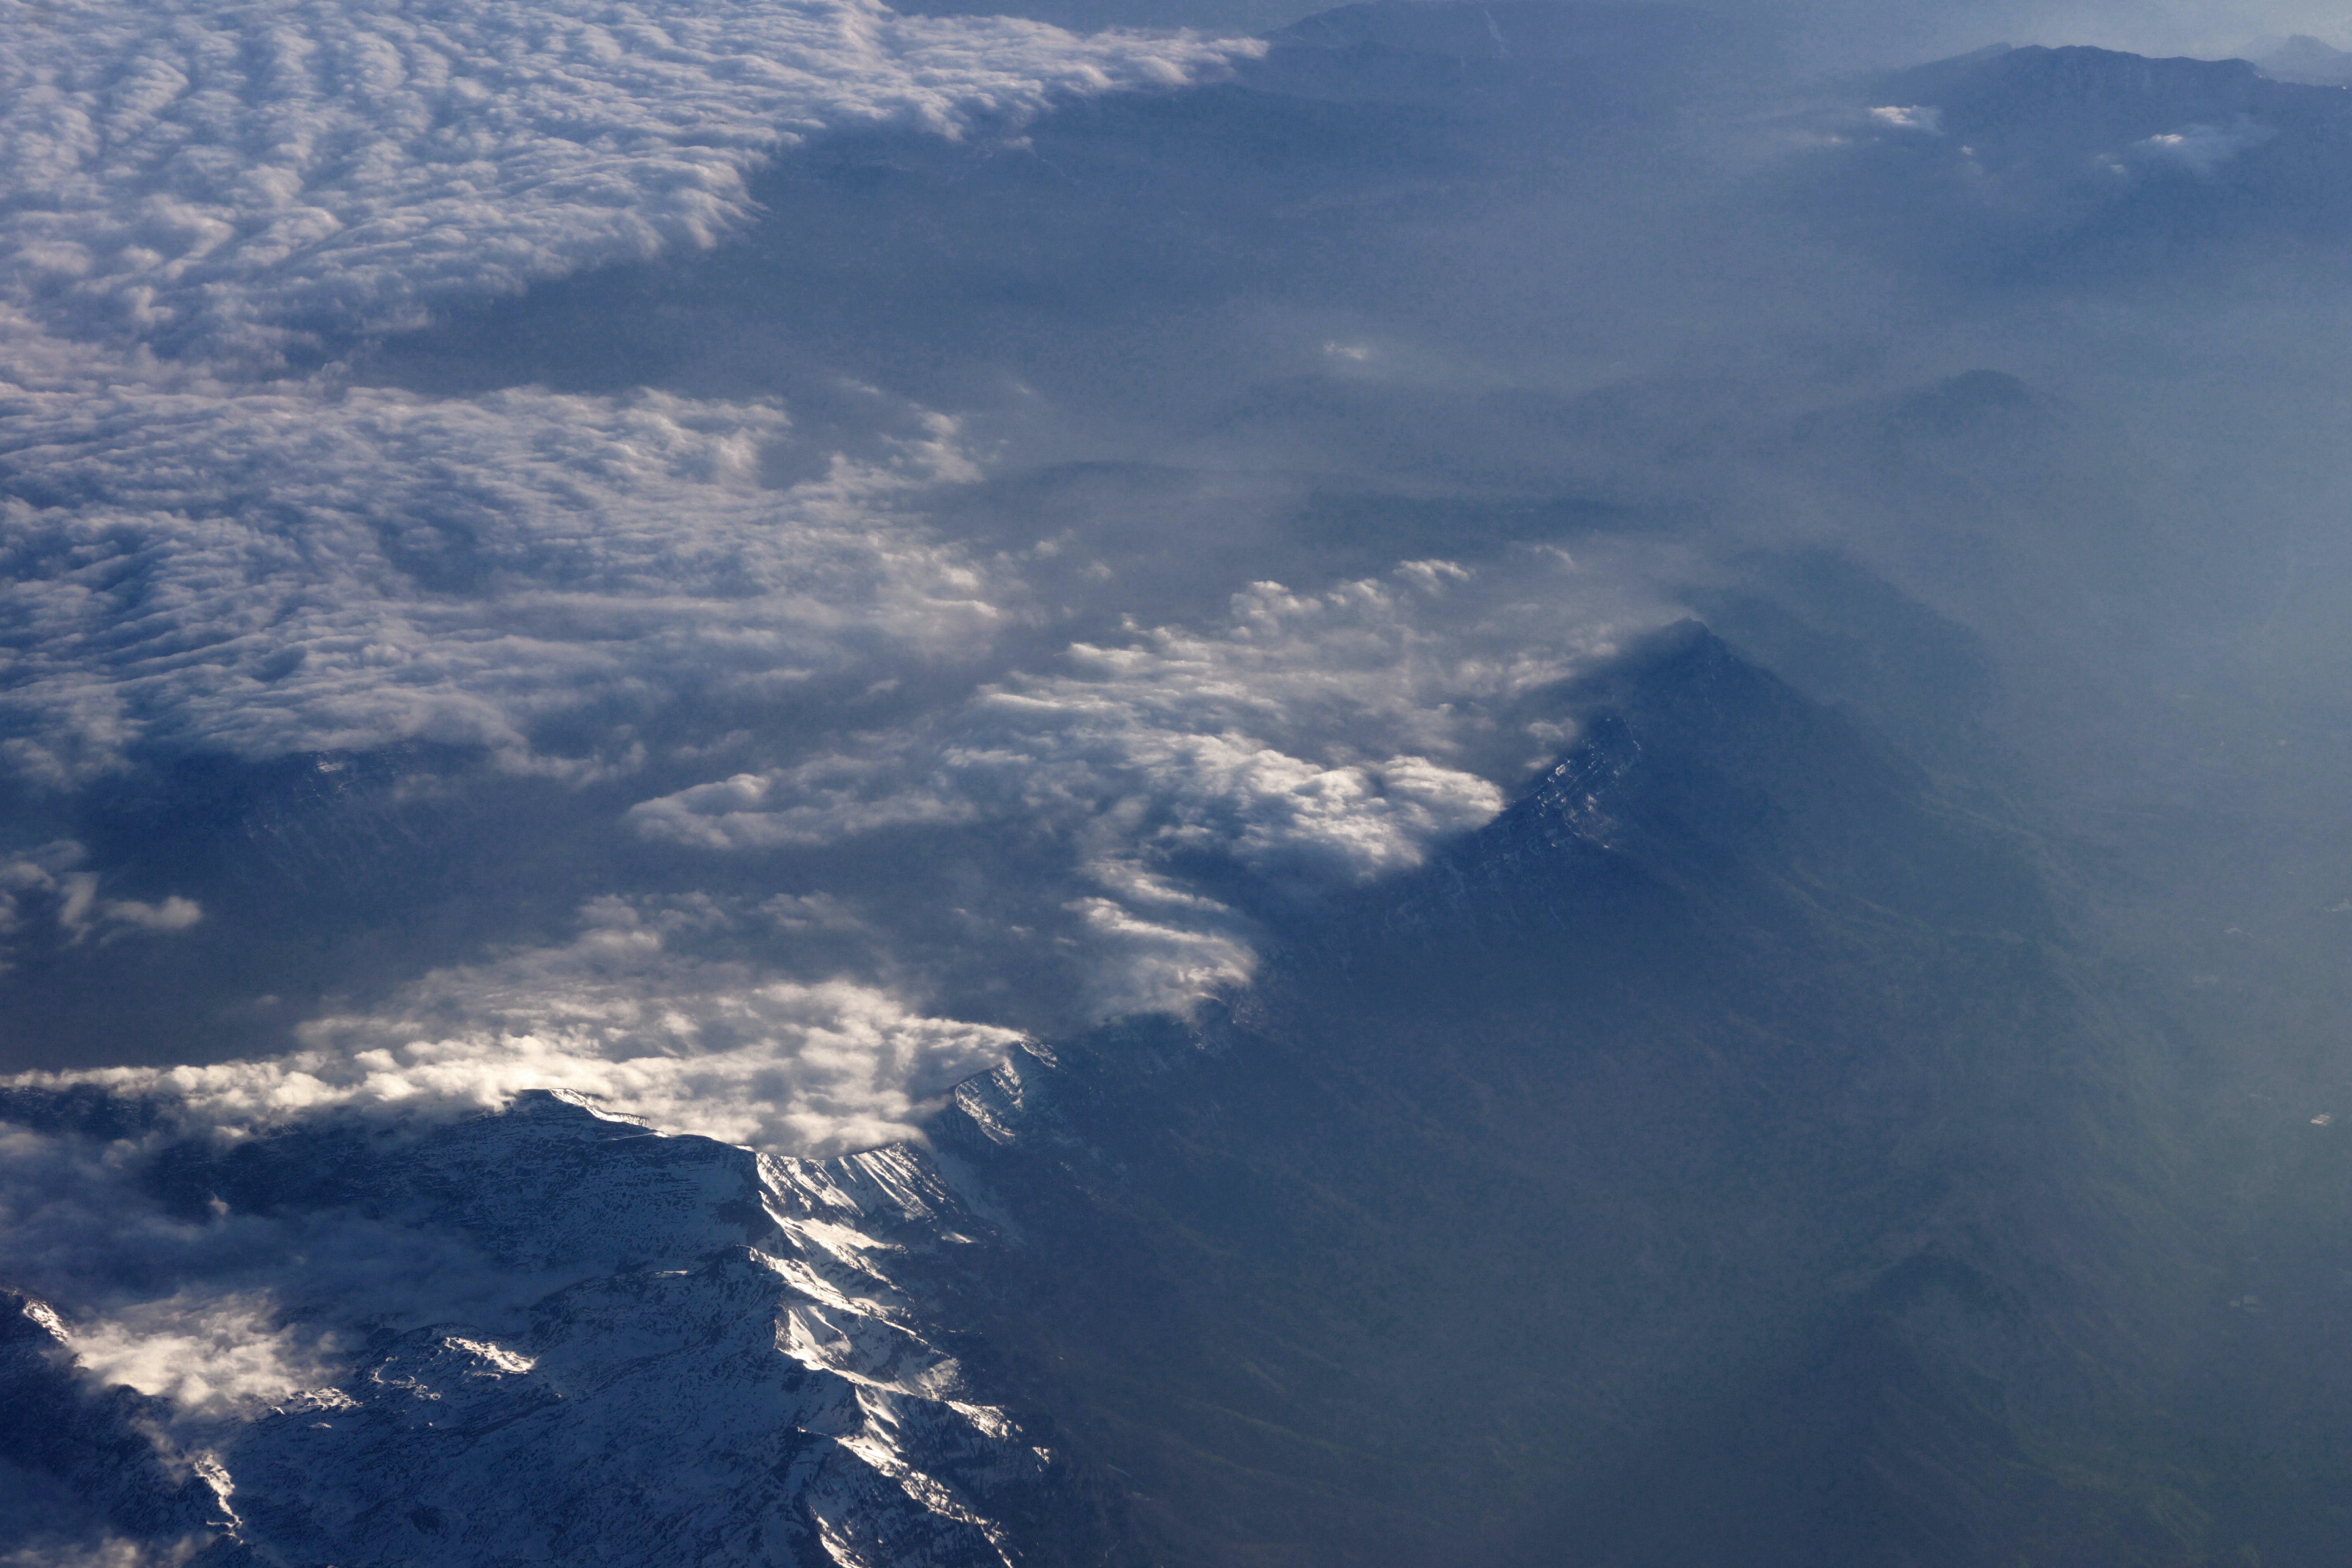 Aerial view of the peaks of a mountain range and clouds from above